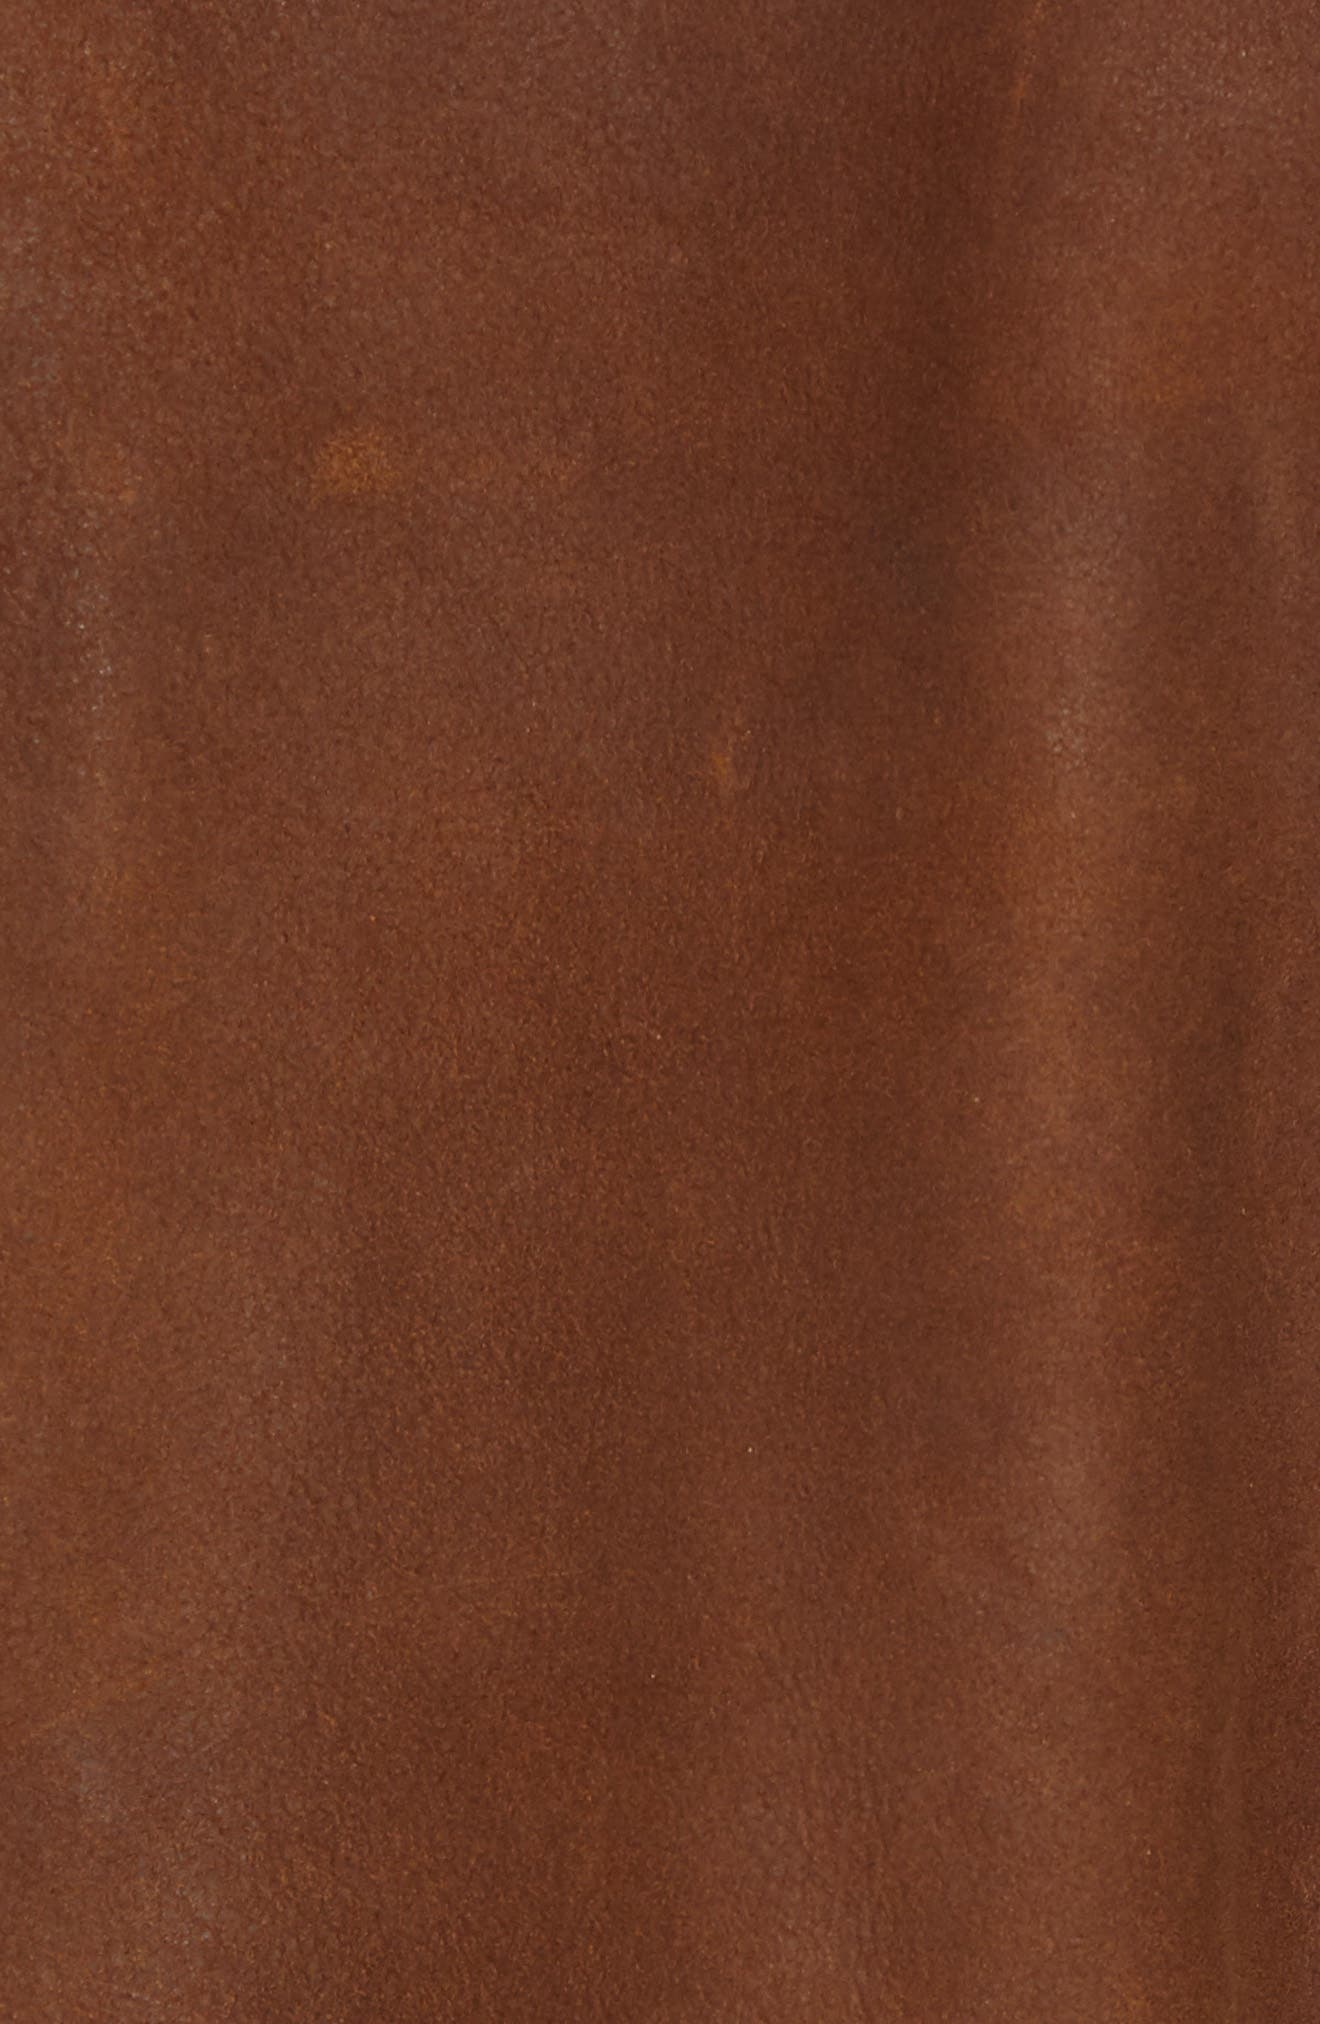 Classic Fit Distressed Leather Hybrid Coat,                             Alternate thumbnail 7, color,                             BROWN